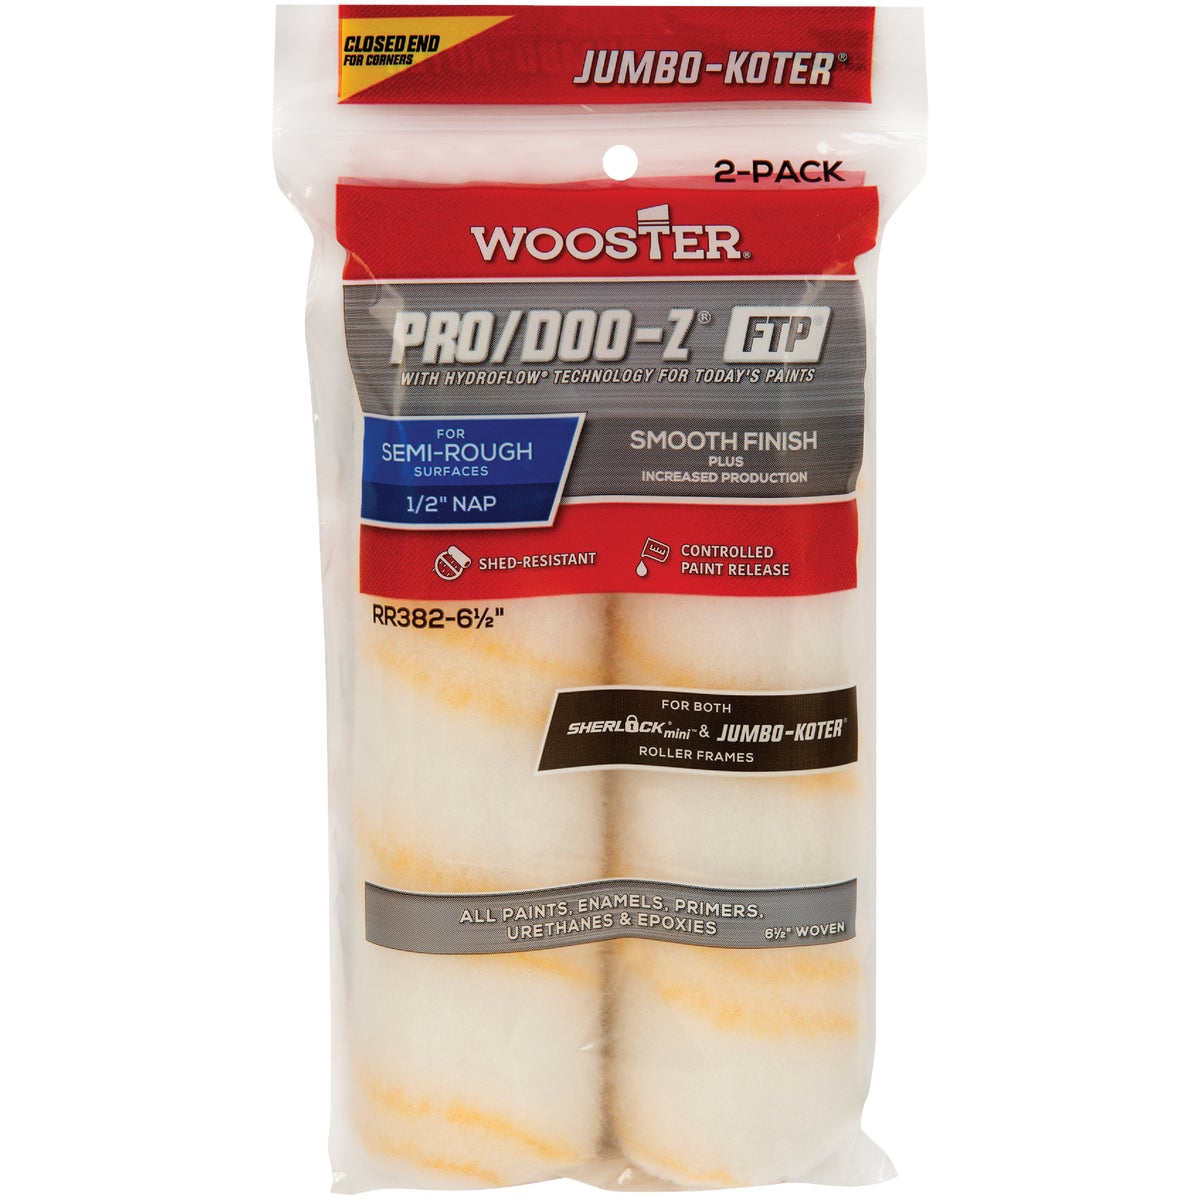 6-1/2X1/2 FTP ROLLER CVR - RR372-6-1/2 by Wooster Brush Co